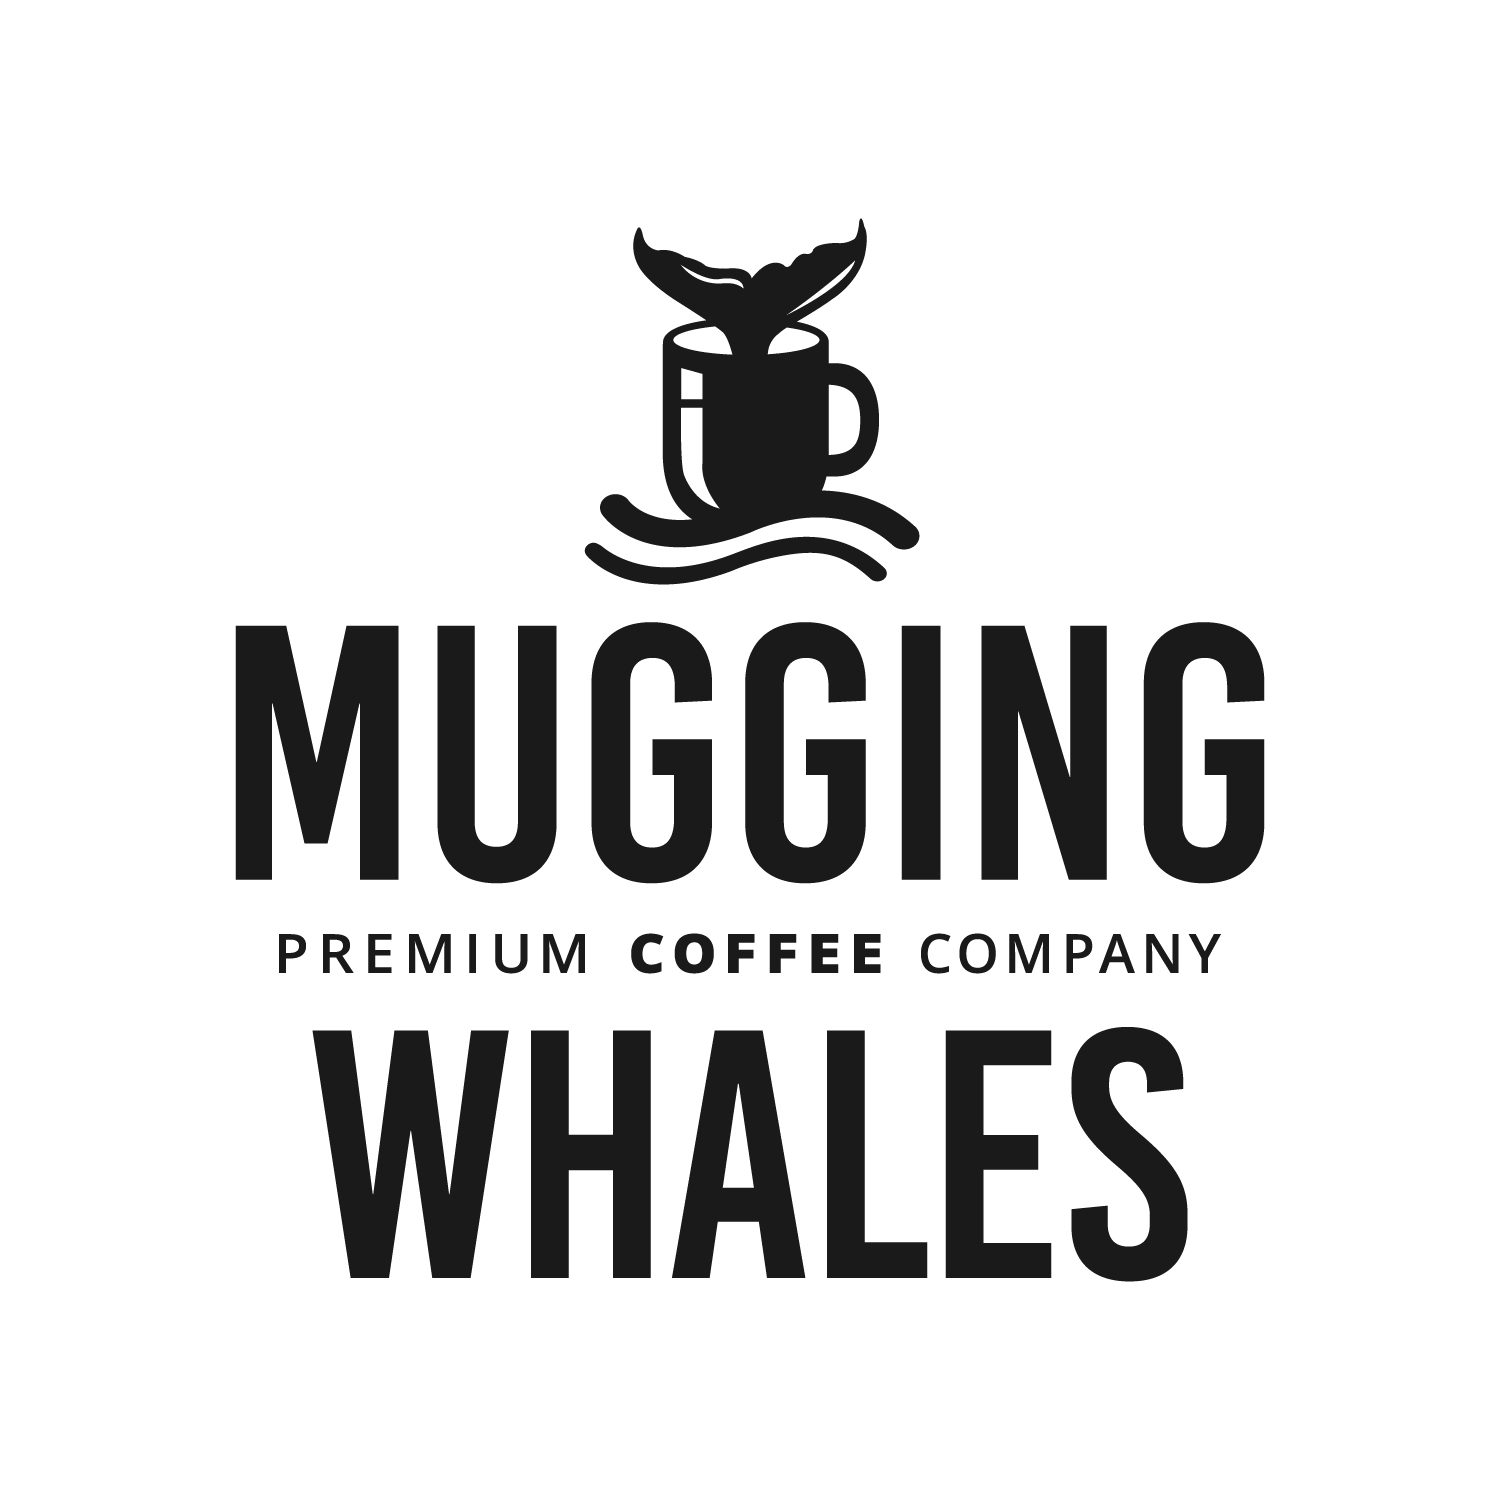 Mugging Whales Premium Coffee Co.